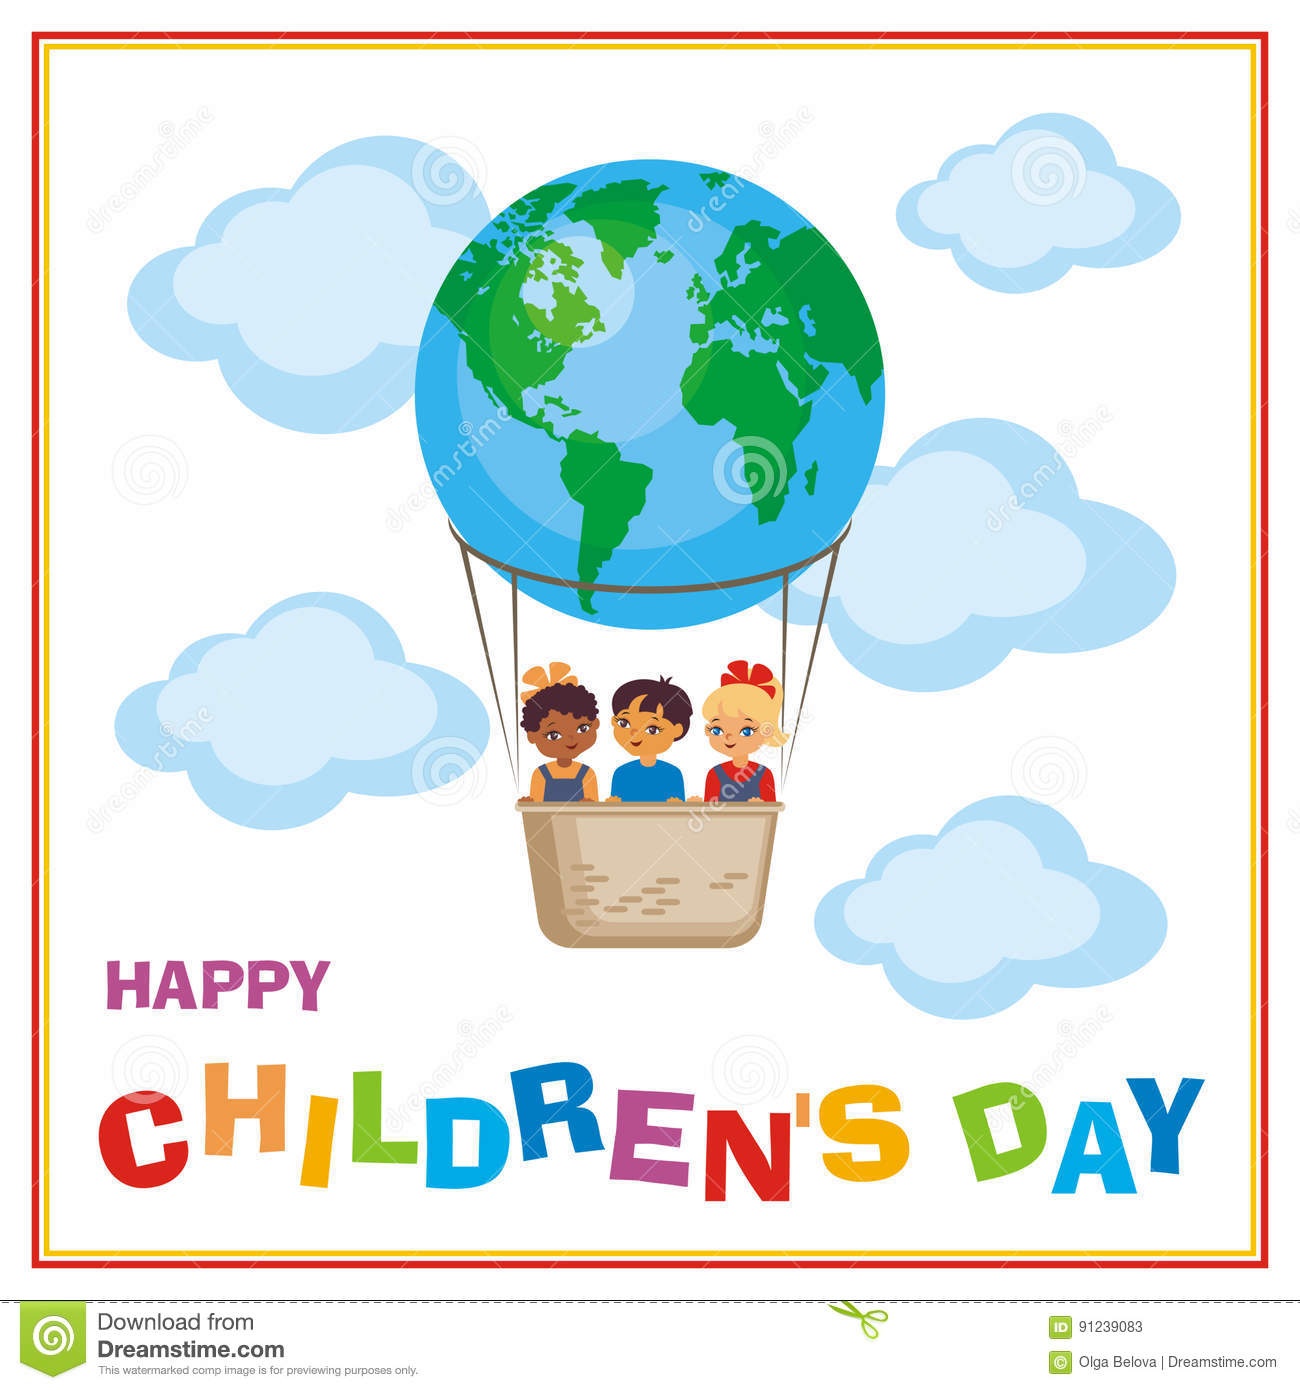 Happy Childrens Day Banner Stock Vector Illustration Of Earth